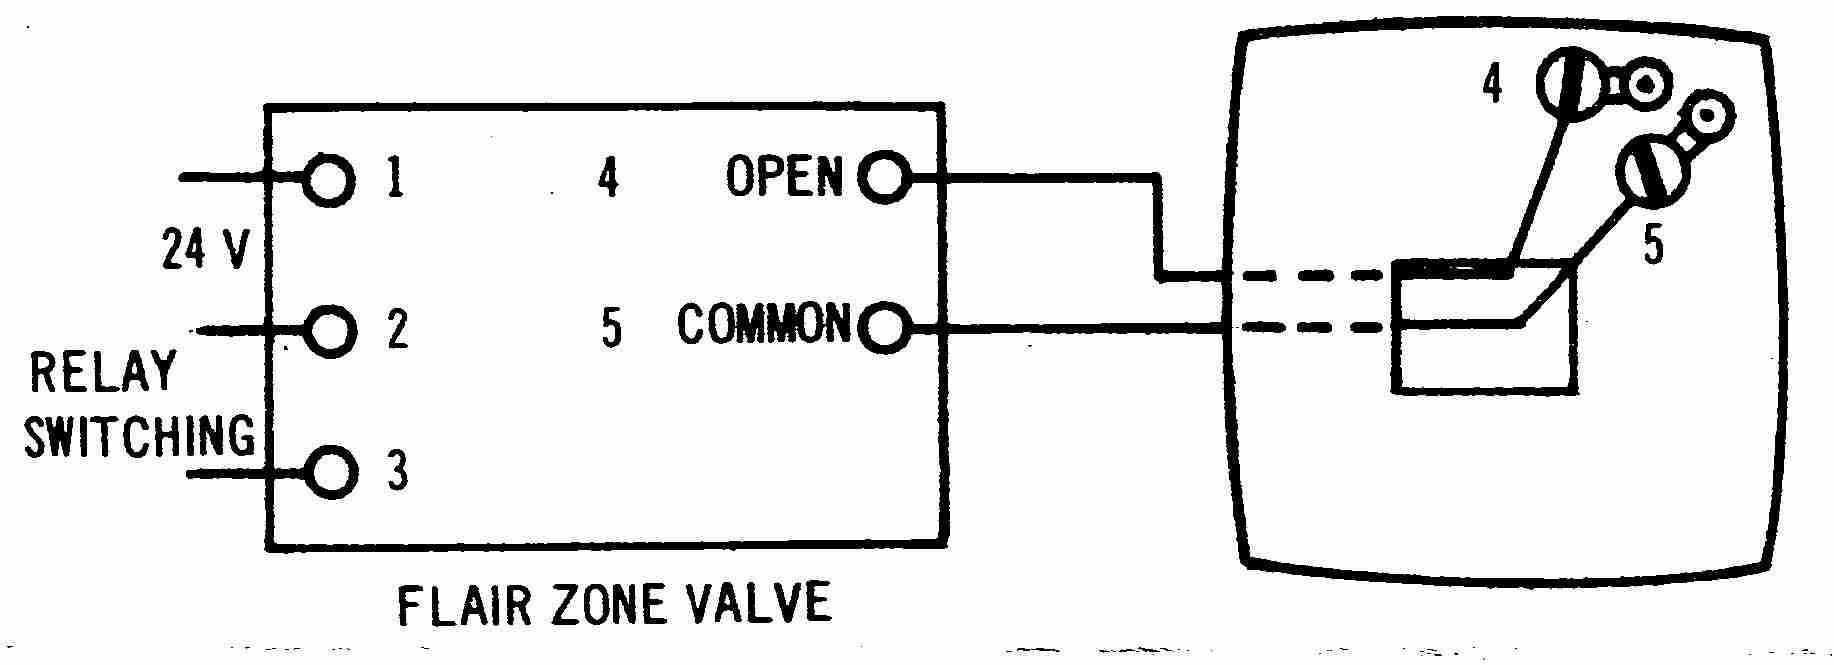 Flair2w_001_DJFc1 room thermostat wiring diagrams for hvac systems fcu wiring diagram at nearapp.co